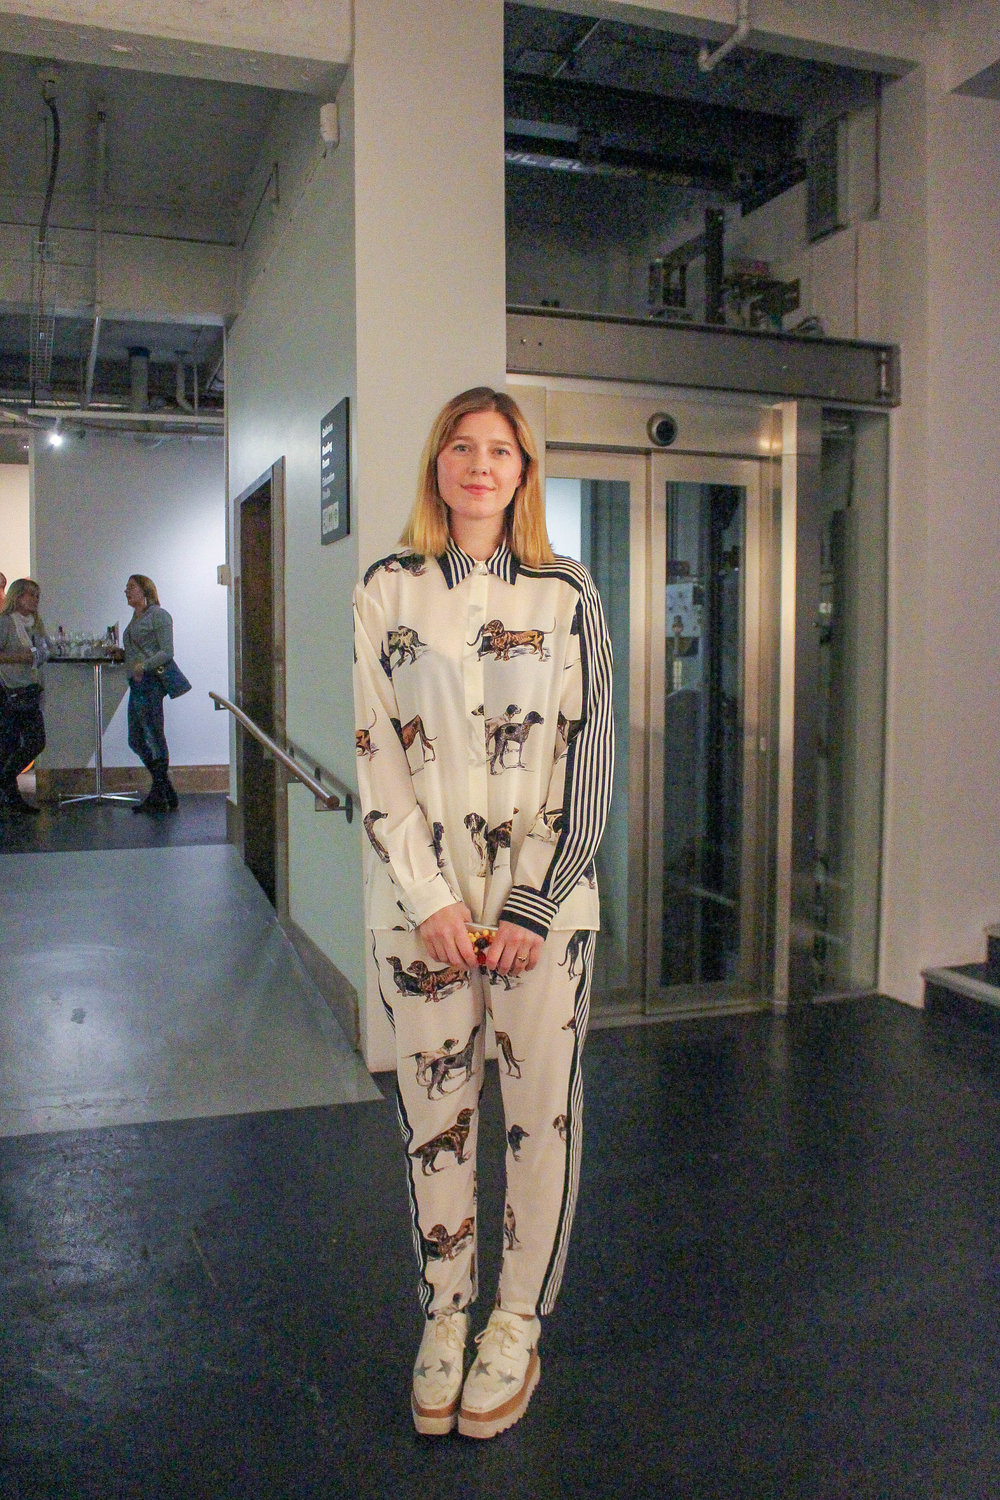 Artist Petra Cortright - I liked her outfit.